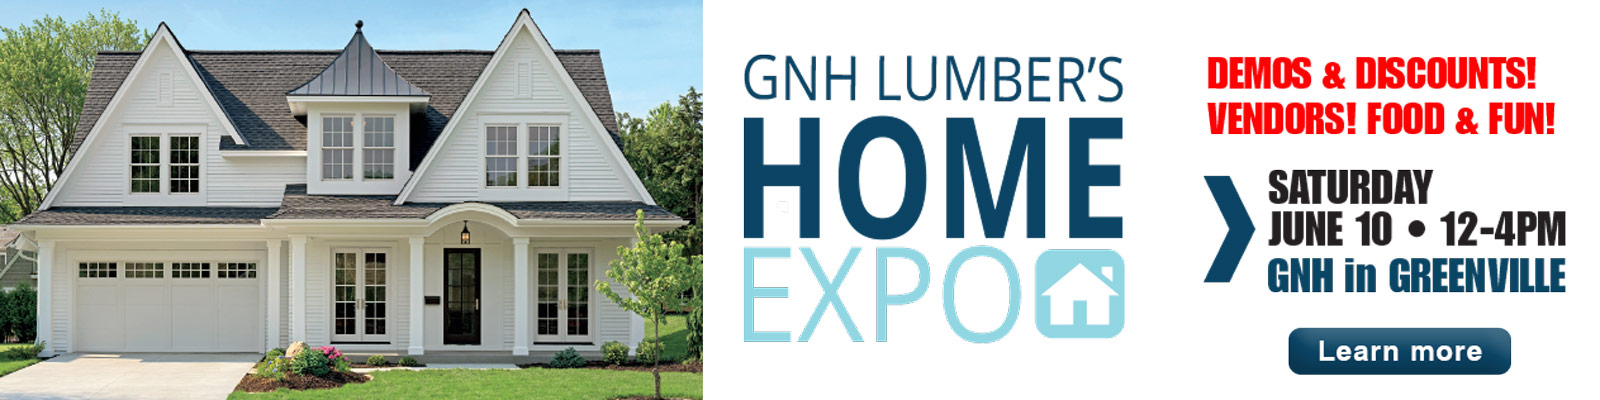 MAY-GNH-Home-Expo-banner